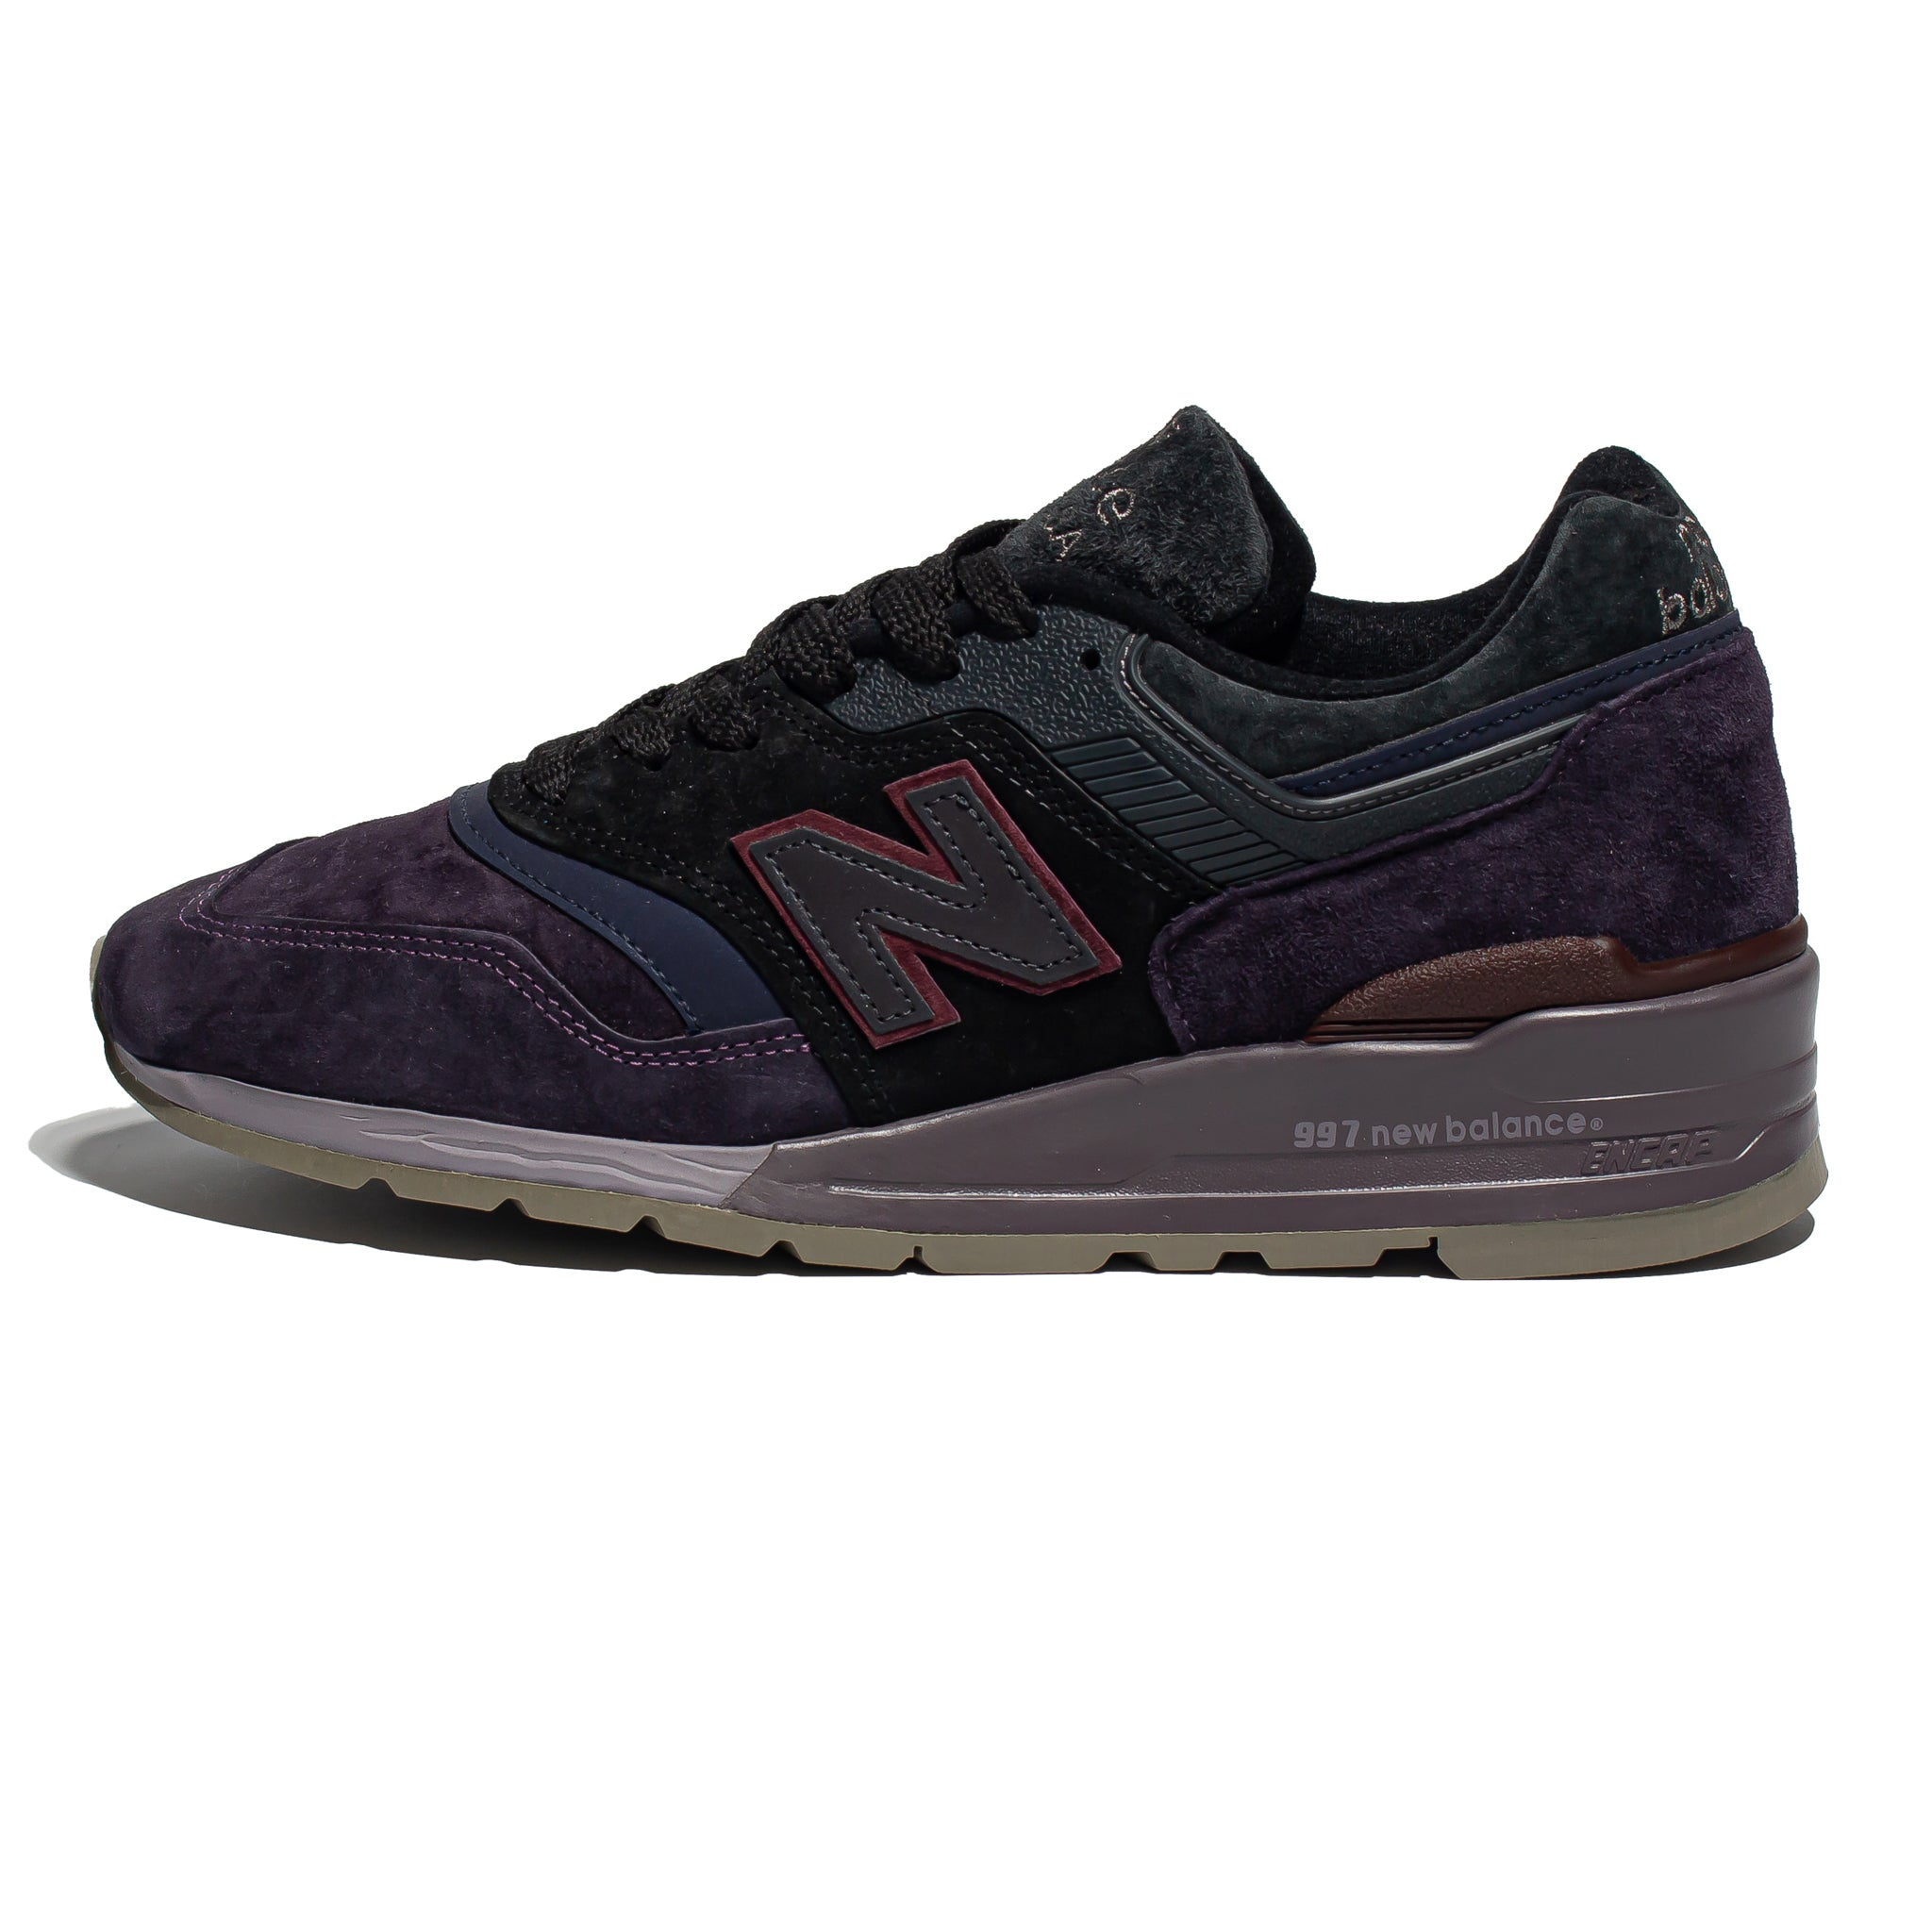 New Balance 'Made in USA' M997NAK